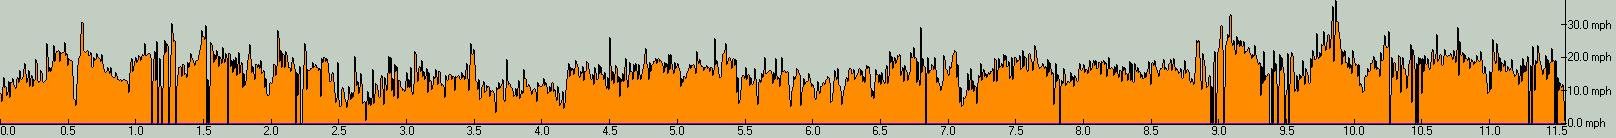 BikeRide091215-Spd_profile.jpg